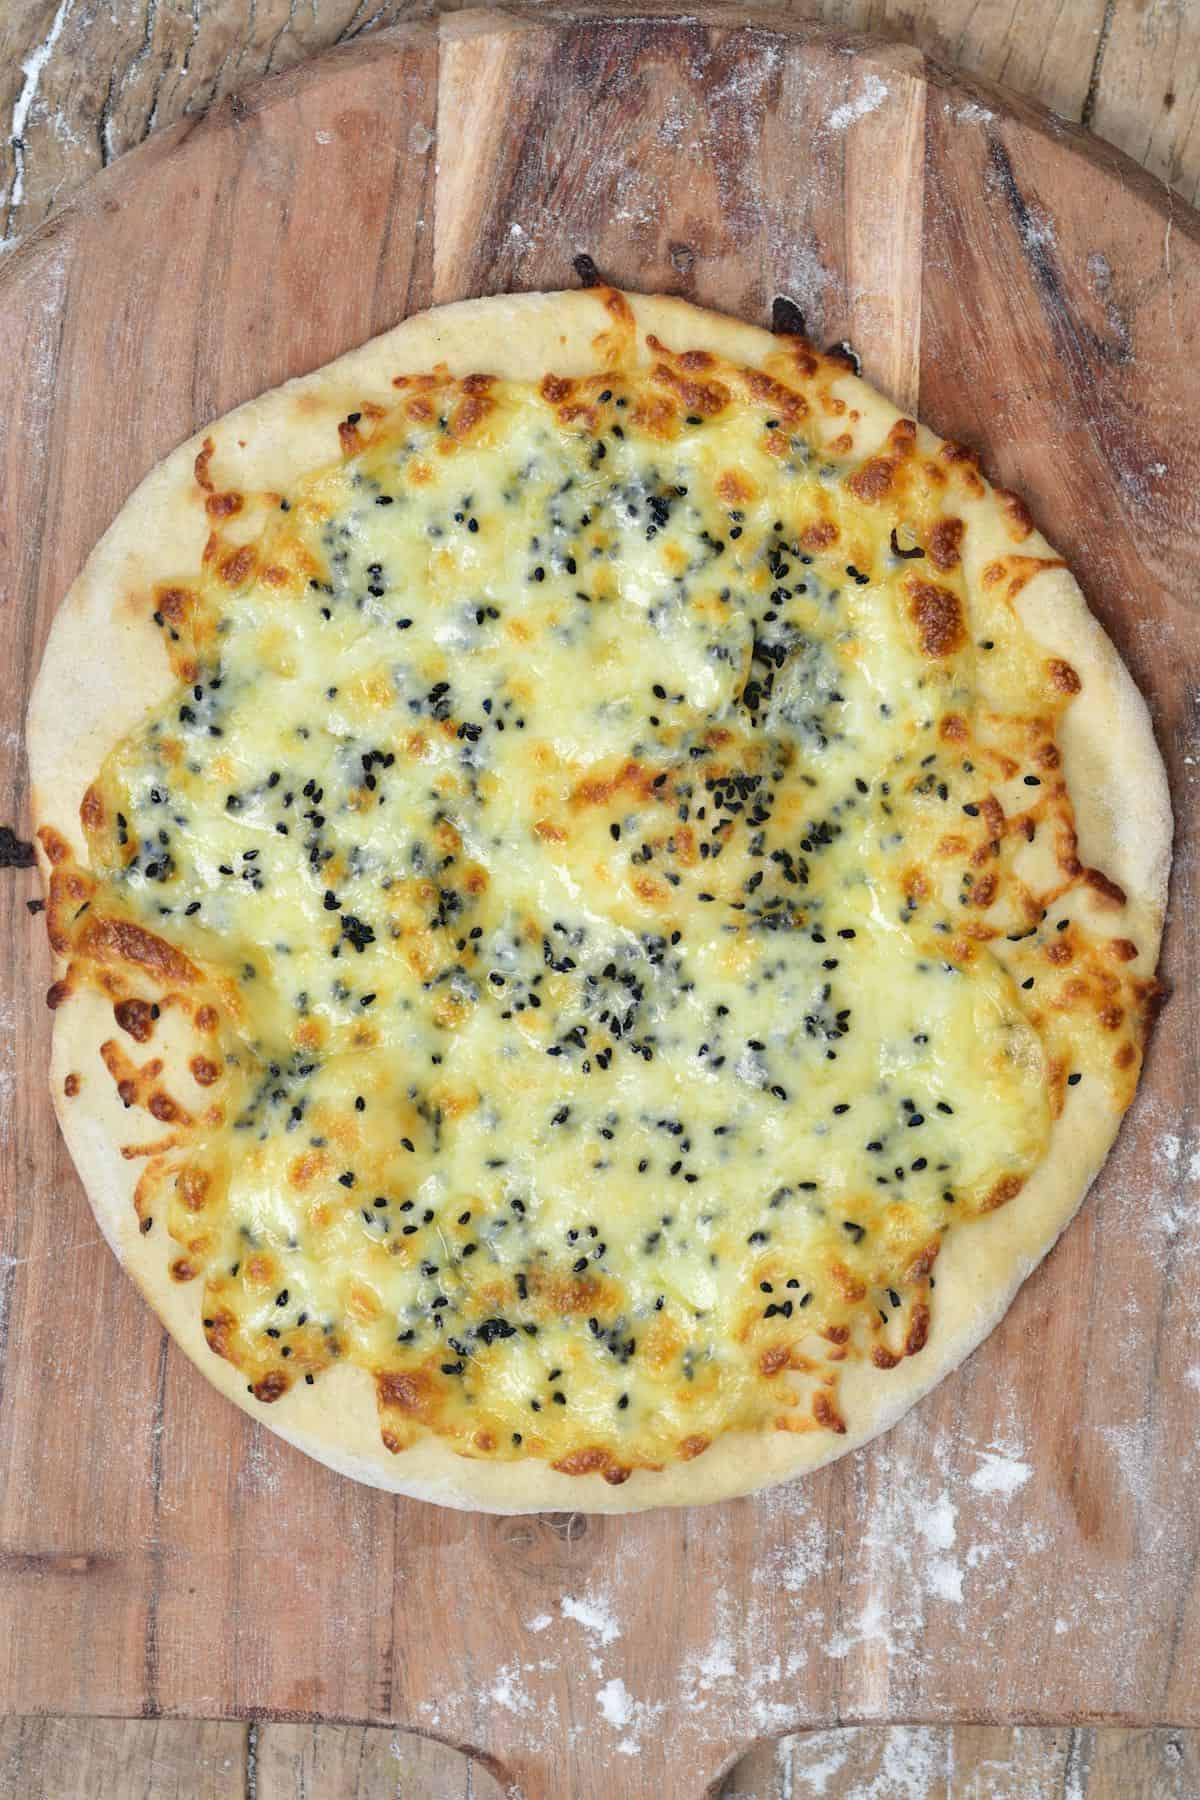 A baked cheese manakish topped with nigella seeds